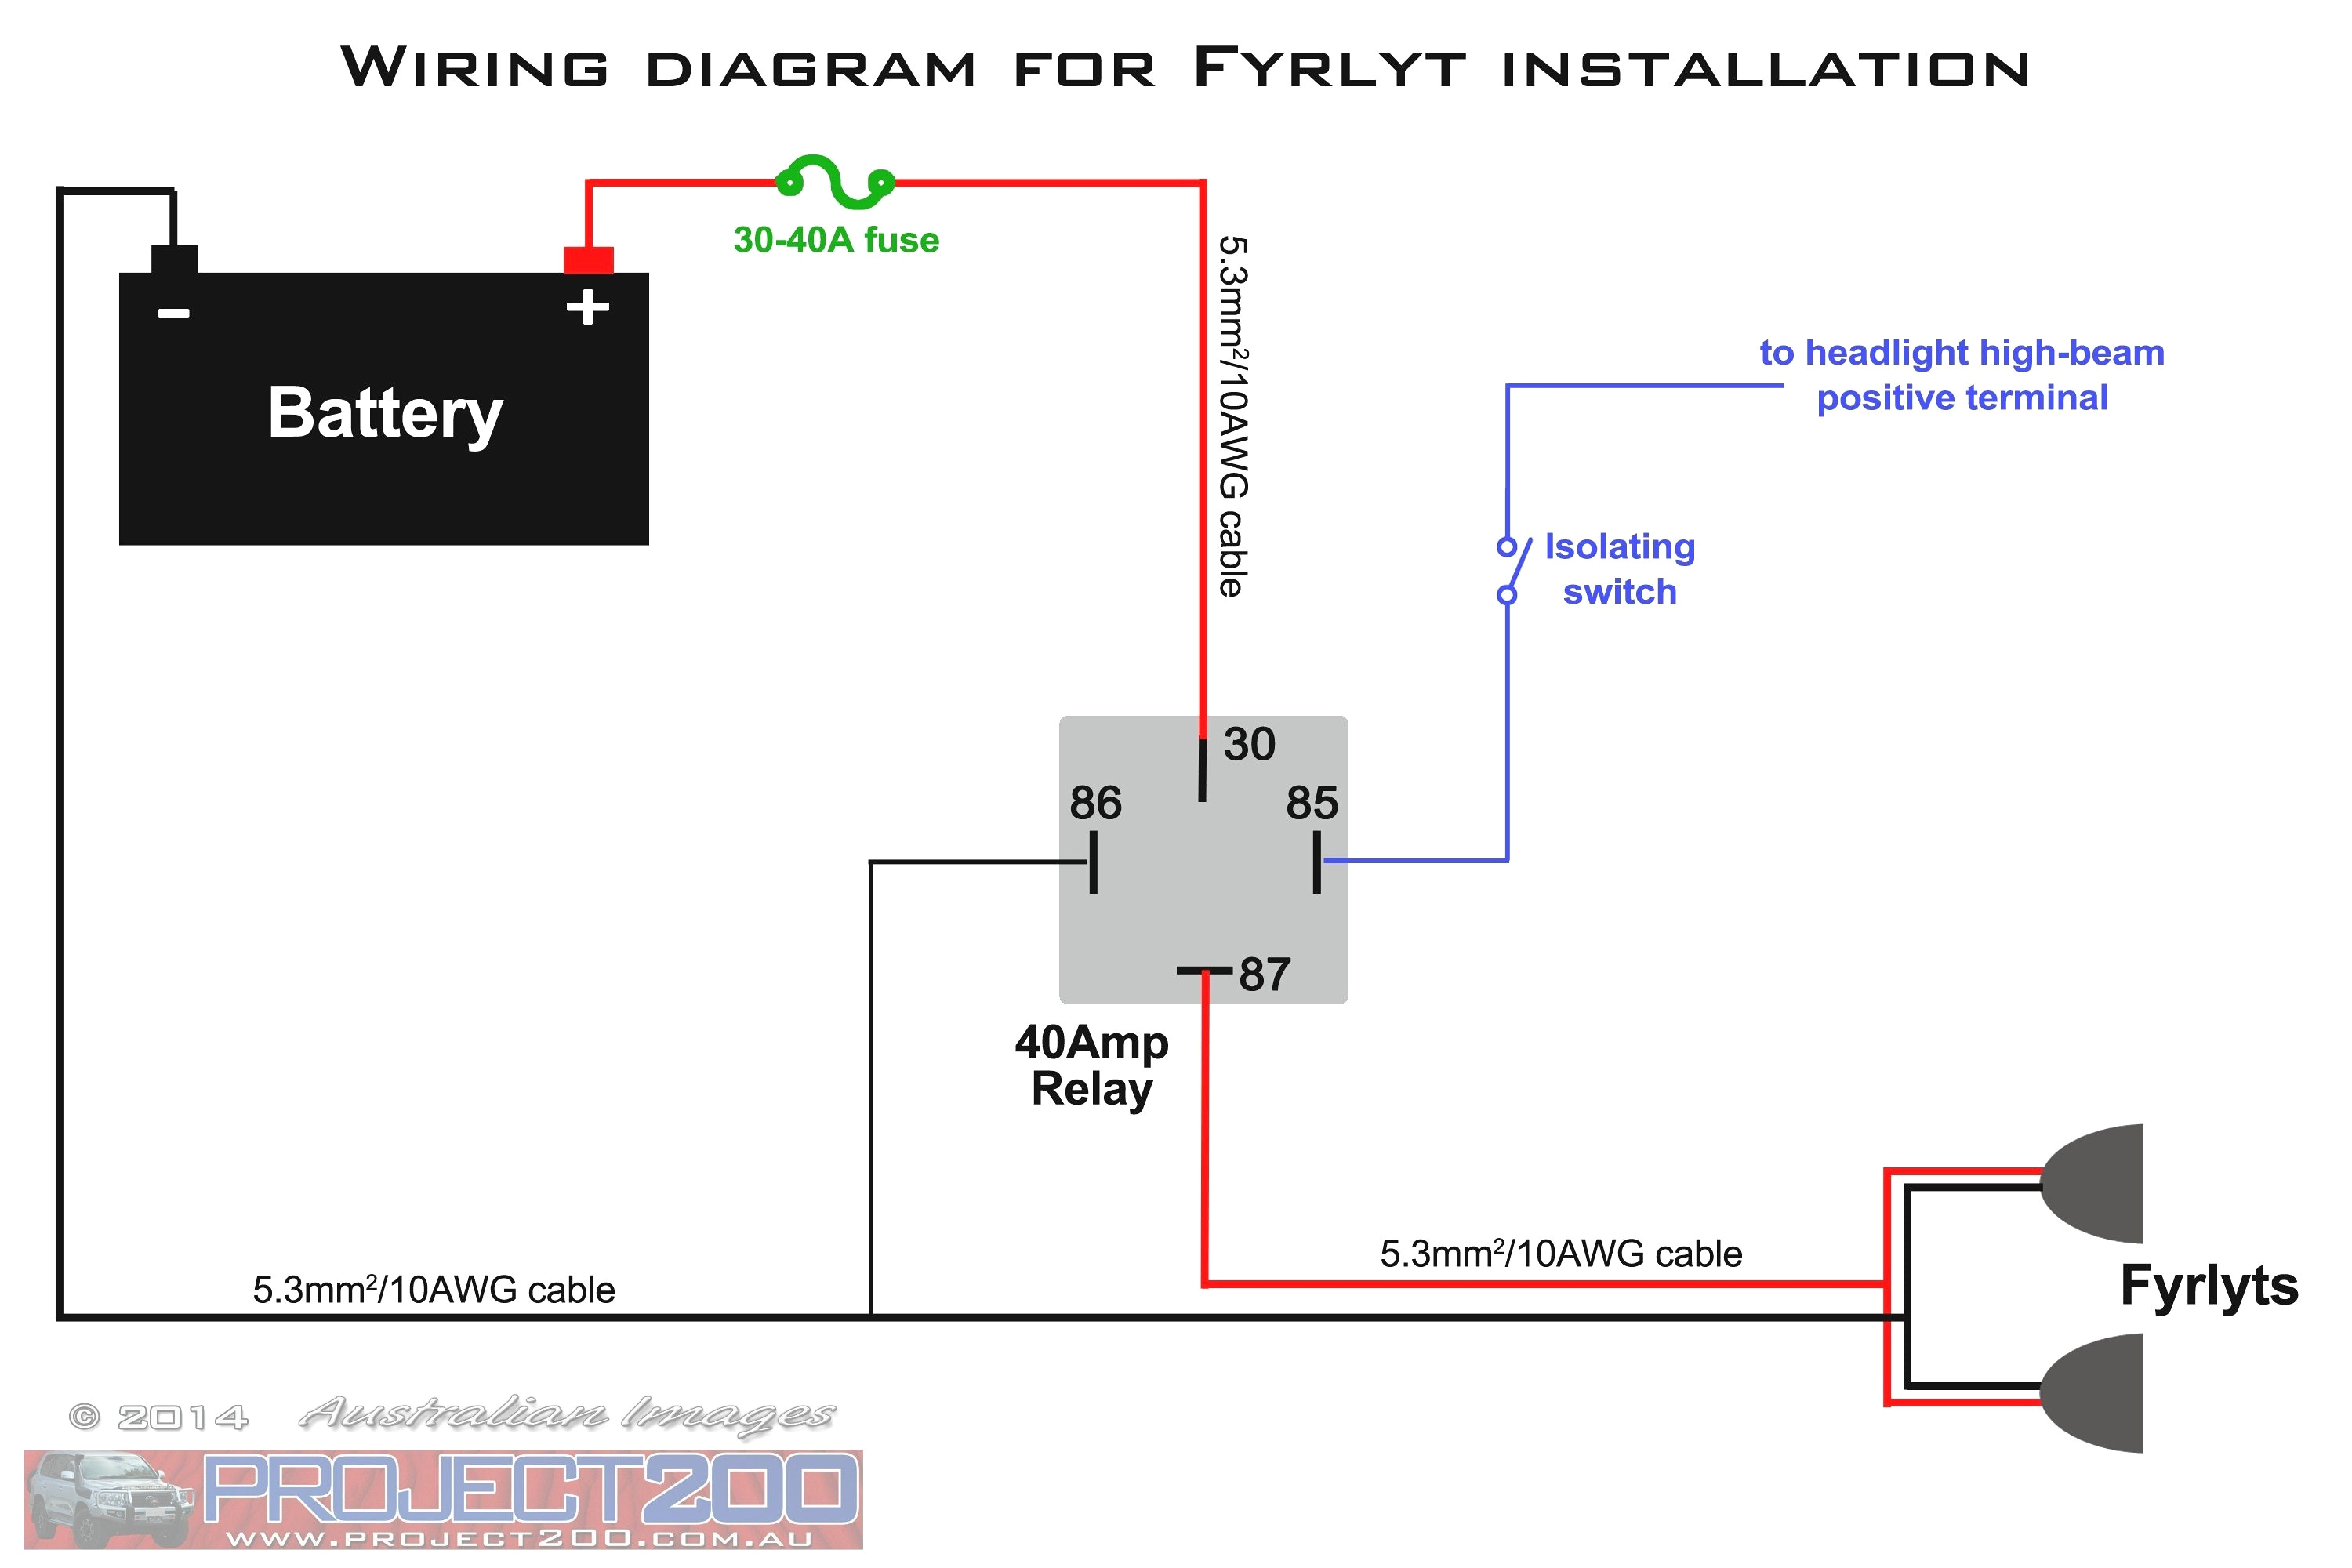 relay 4 wire diagram wiring diagram operations 4 wire relay diagram relay 4 wire diagram